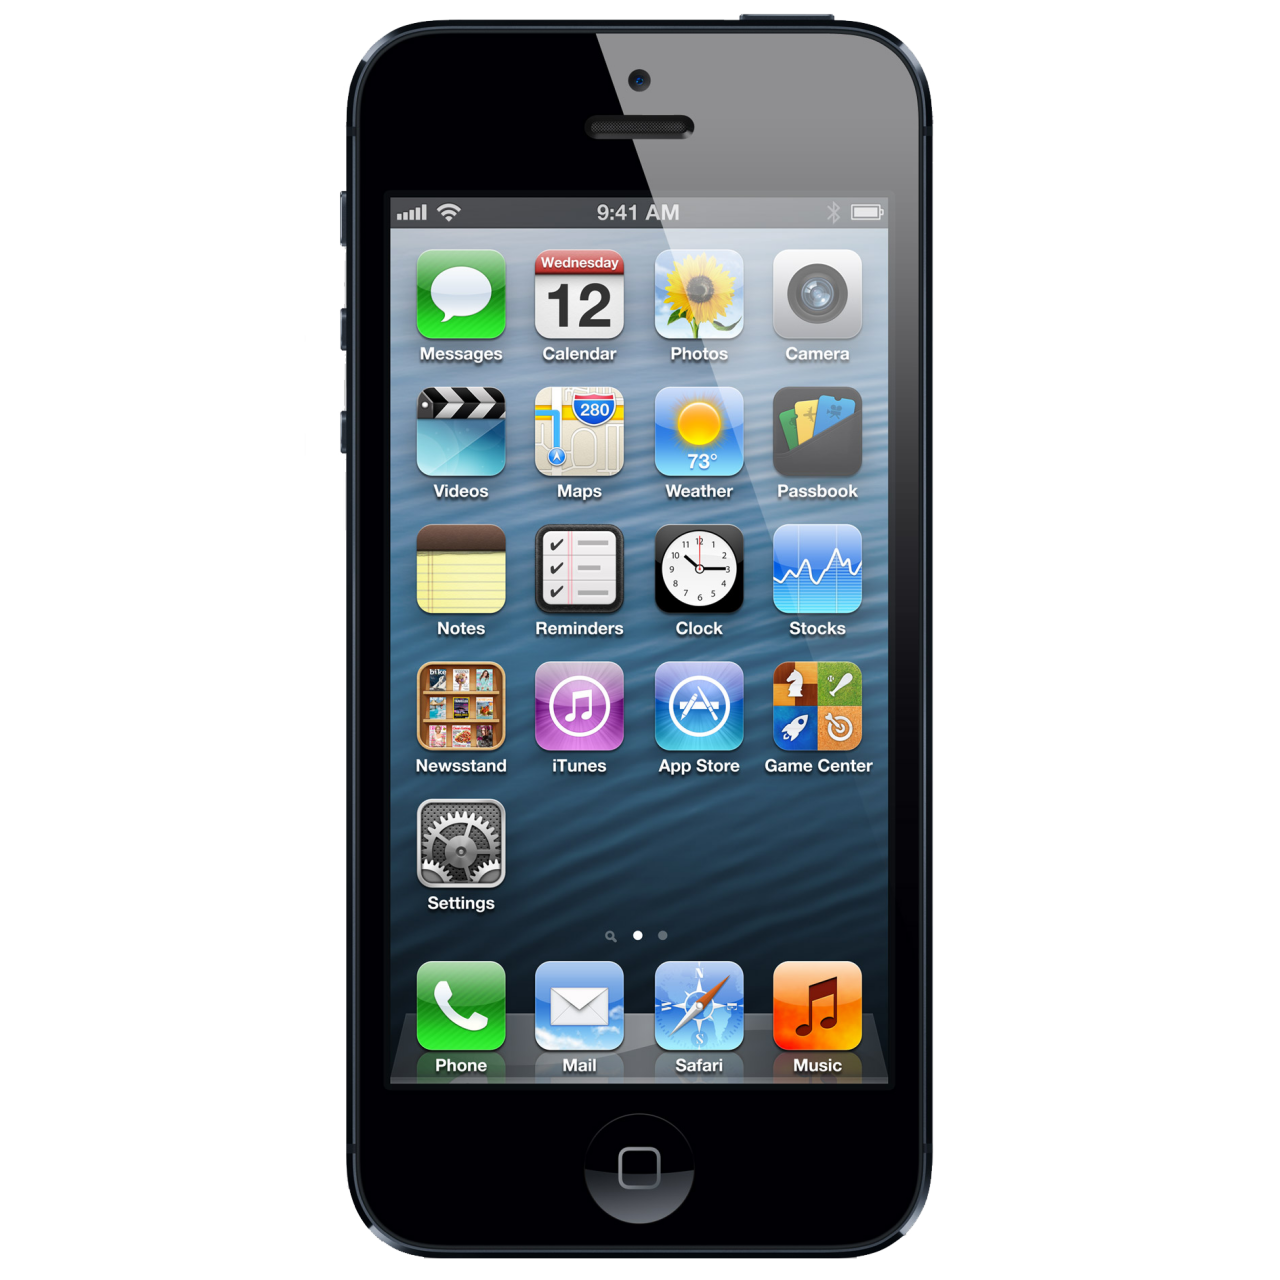 Apple images free download. Iphone 5 real size png image image